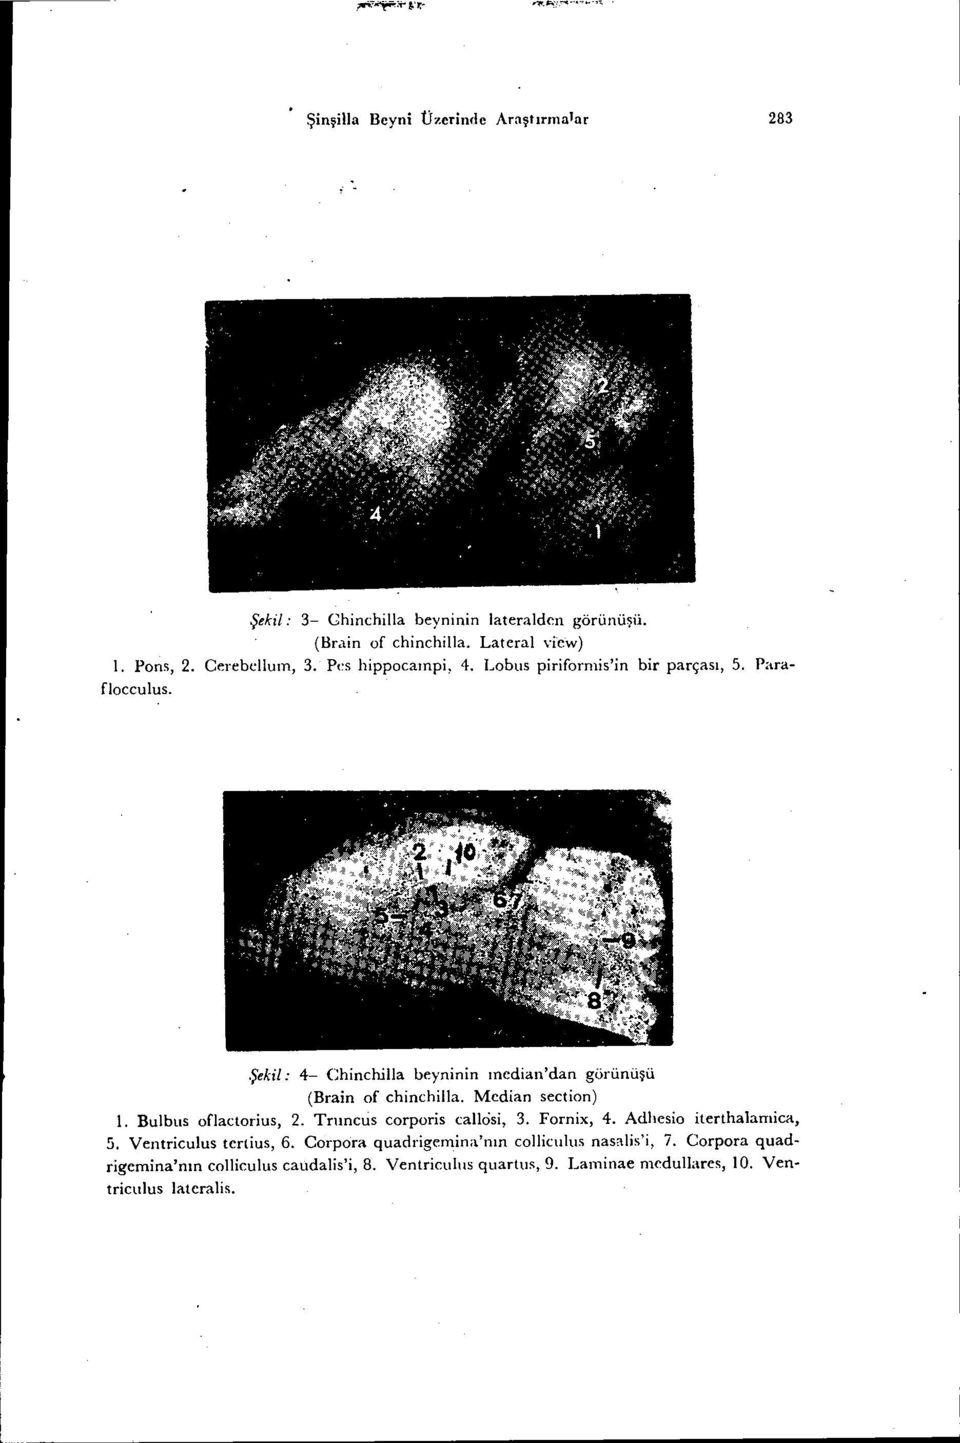 Şekil: 4- Chinchilla beyninin median'dan görünüşü (Brain of chinchilla. Median section) ı. Bulbus oflactorius, 2. Trııncus corporis callôsi, 3.